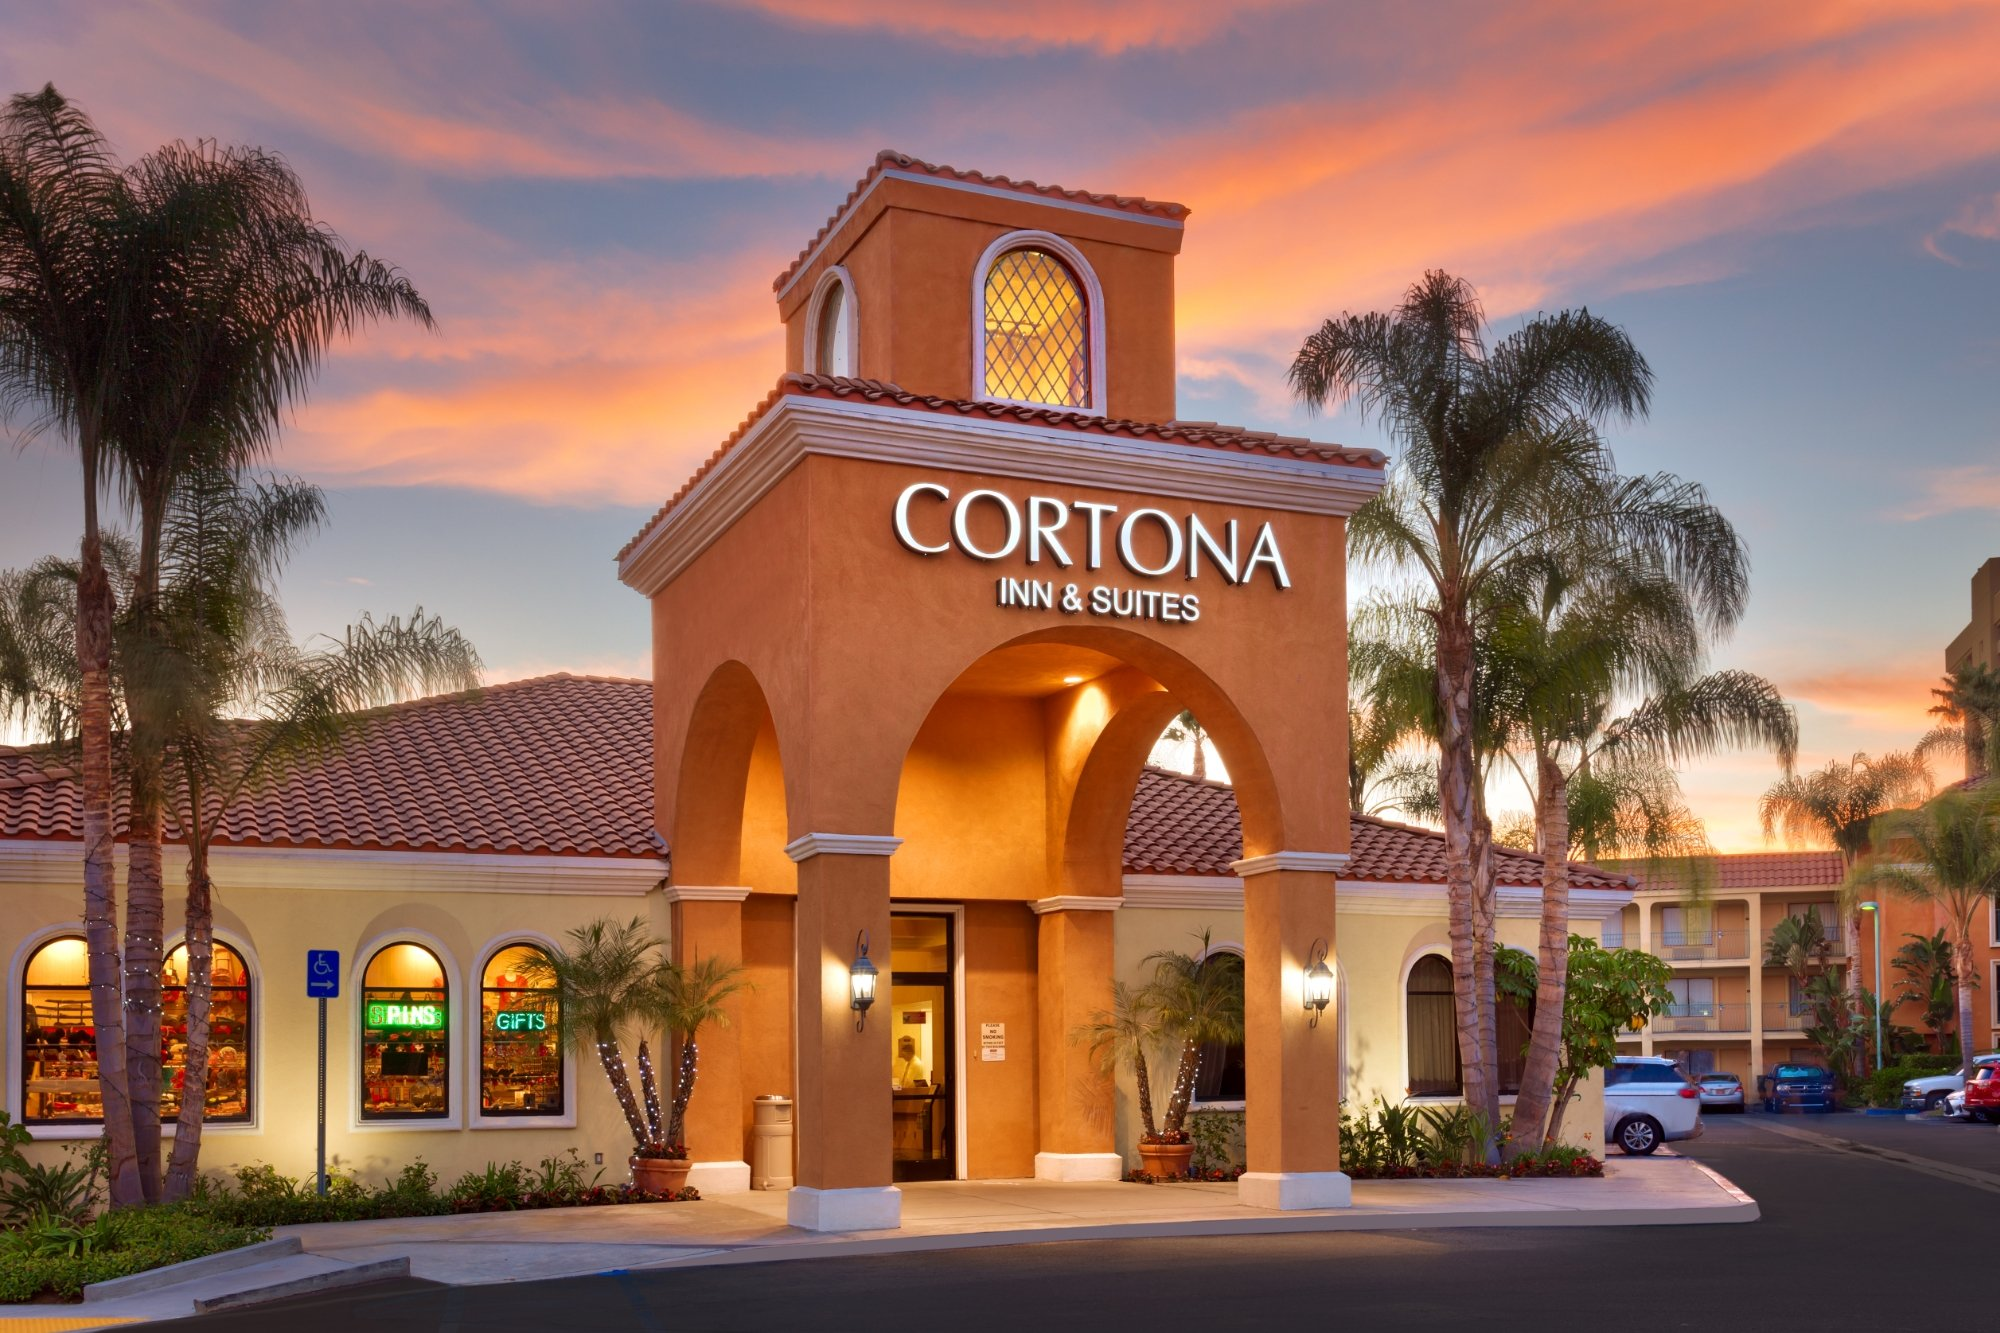 Cortona Inn & Suites Anaheim Resort